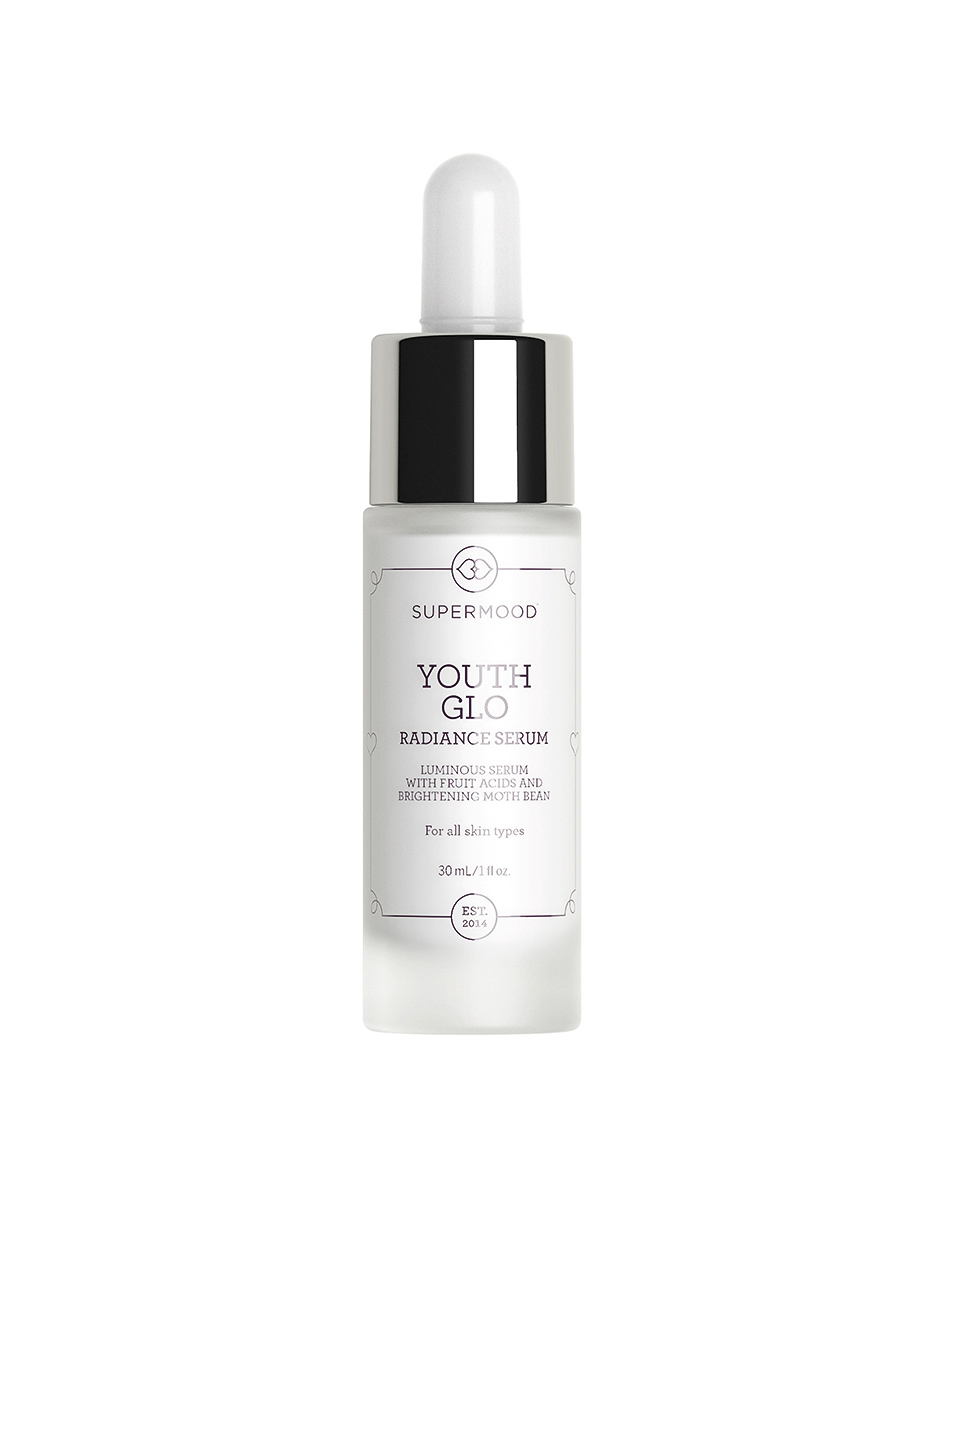 SUPERMOOD Youth Glo Radiance Serum in